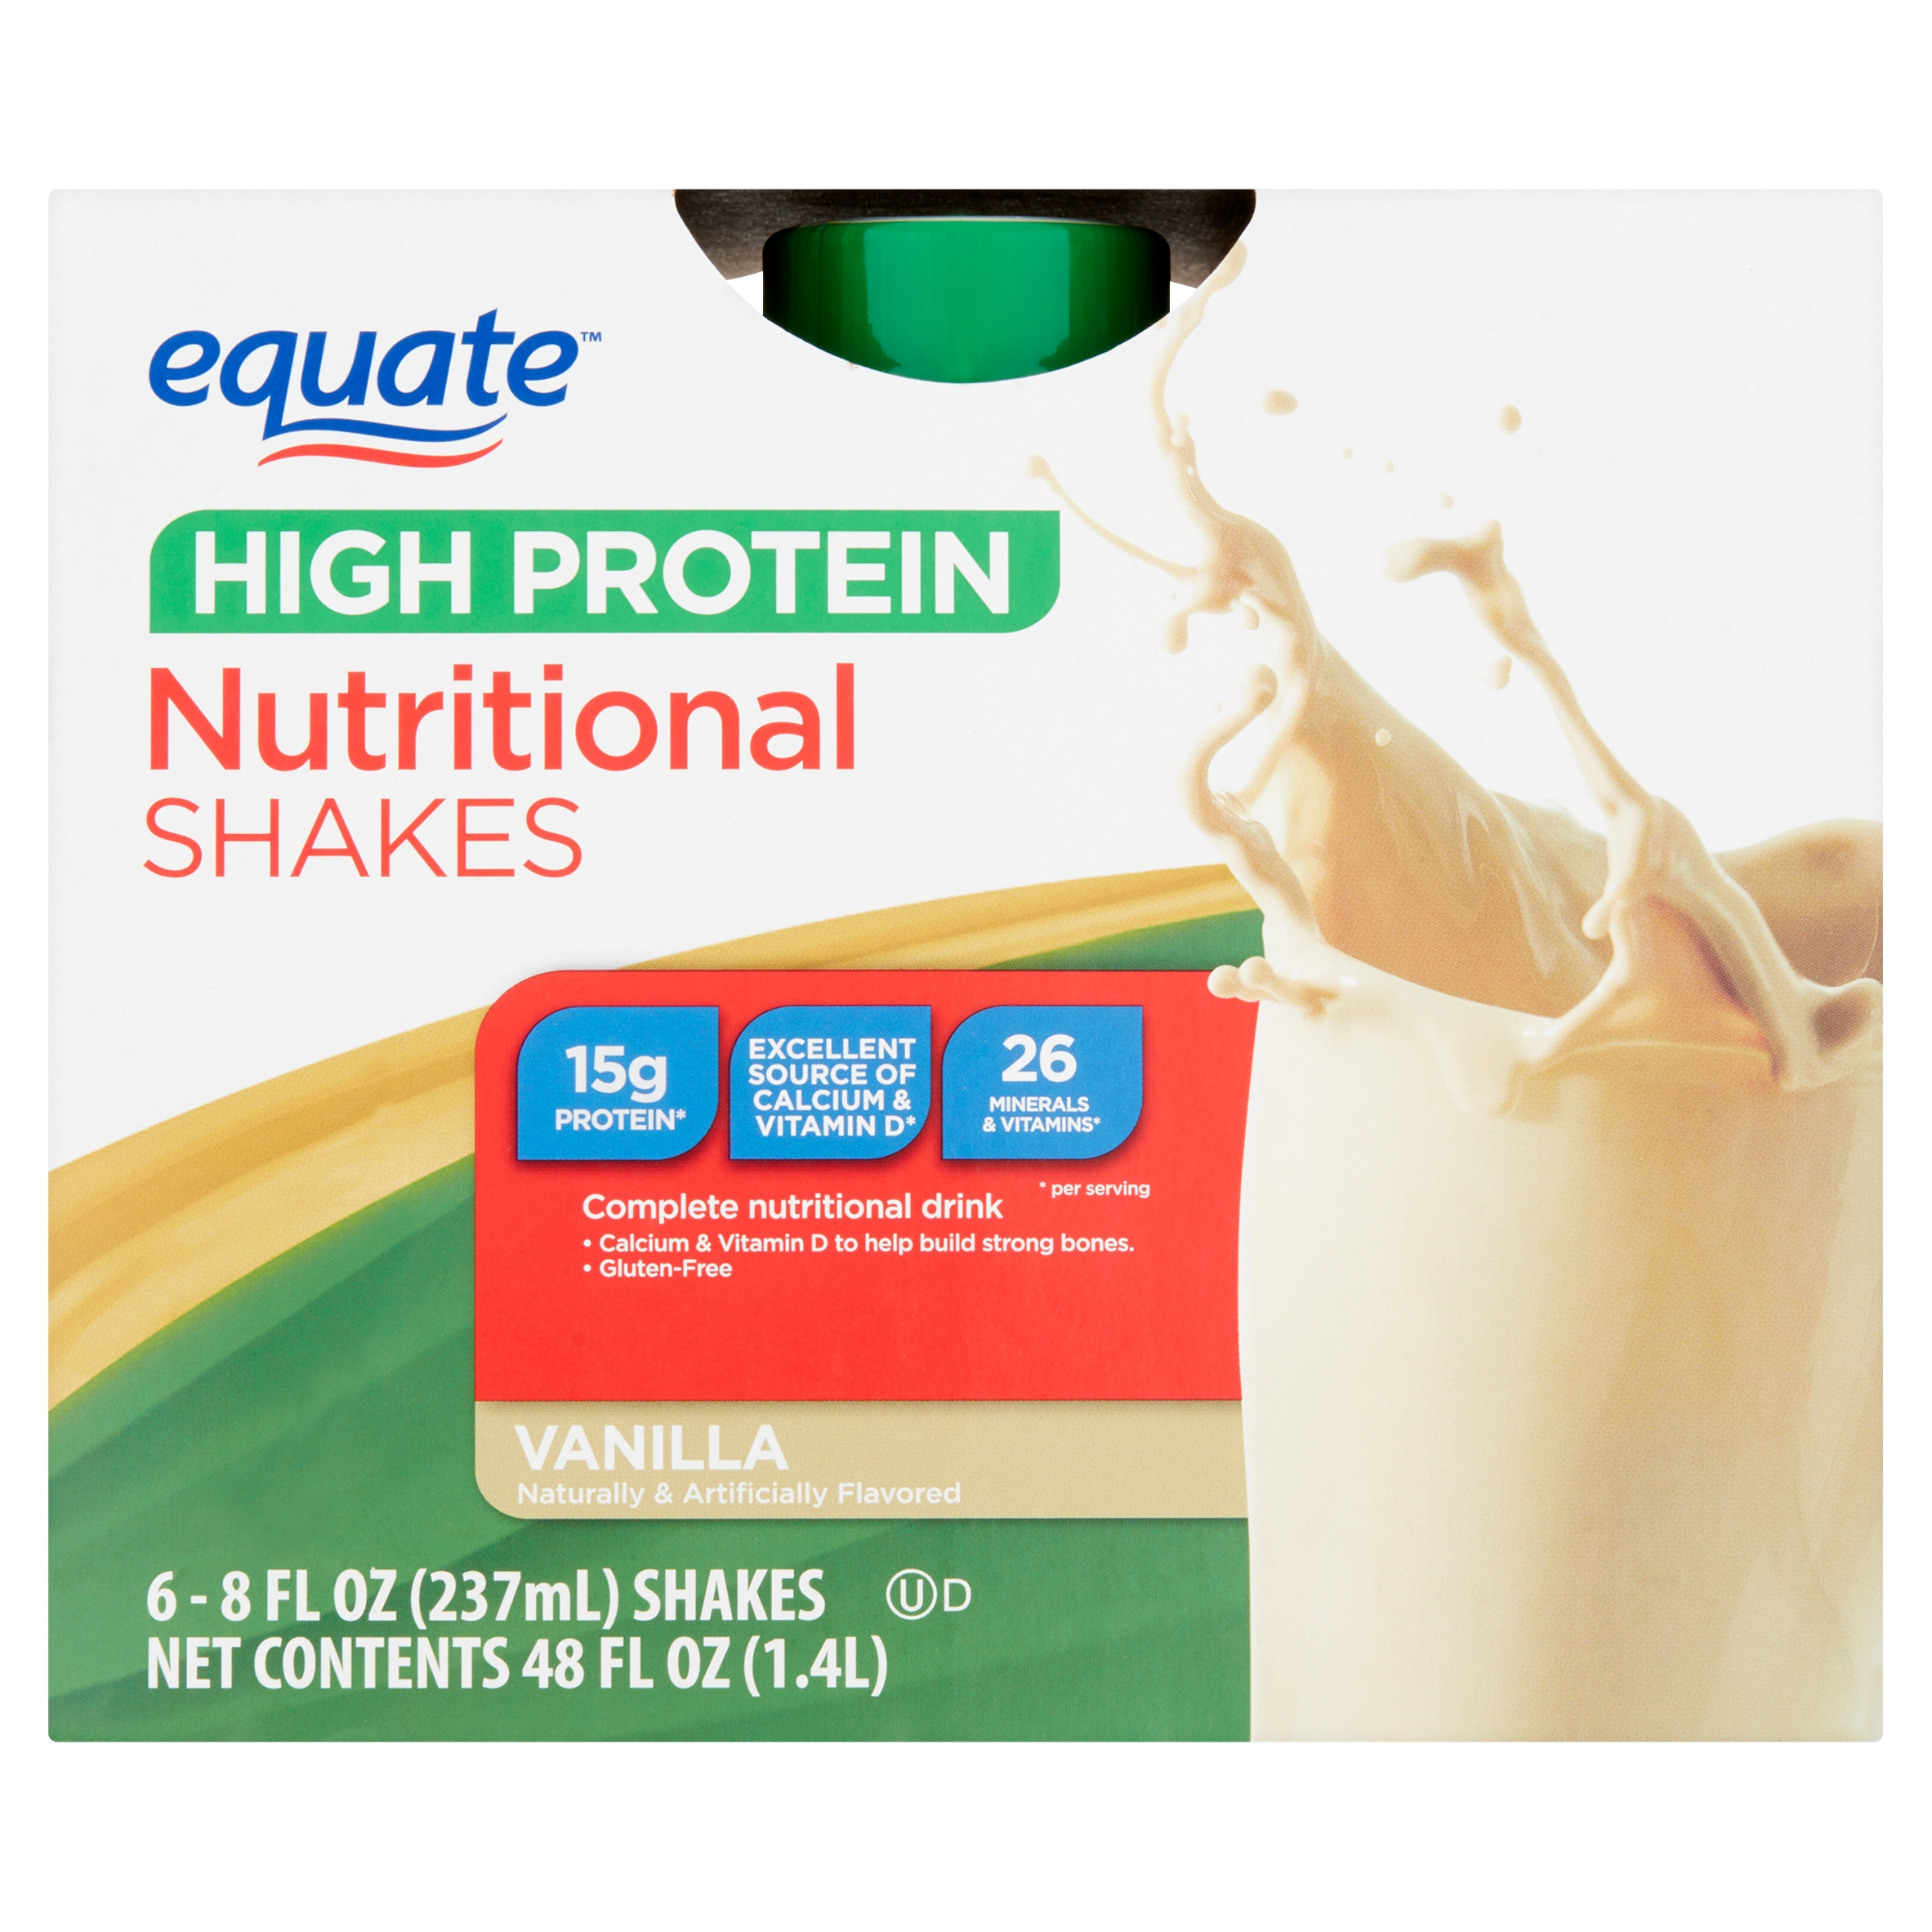 Equate High Protein Vanilla Nutritional Shakes 8 fl oz 6 count